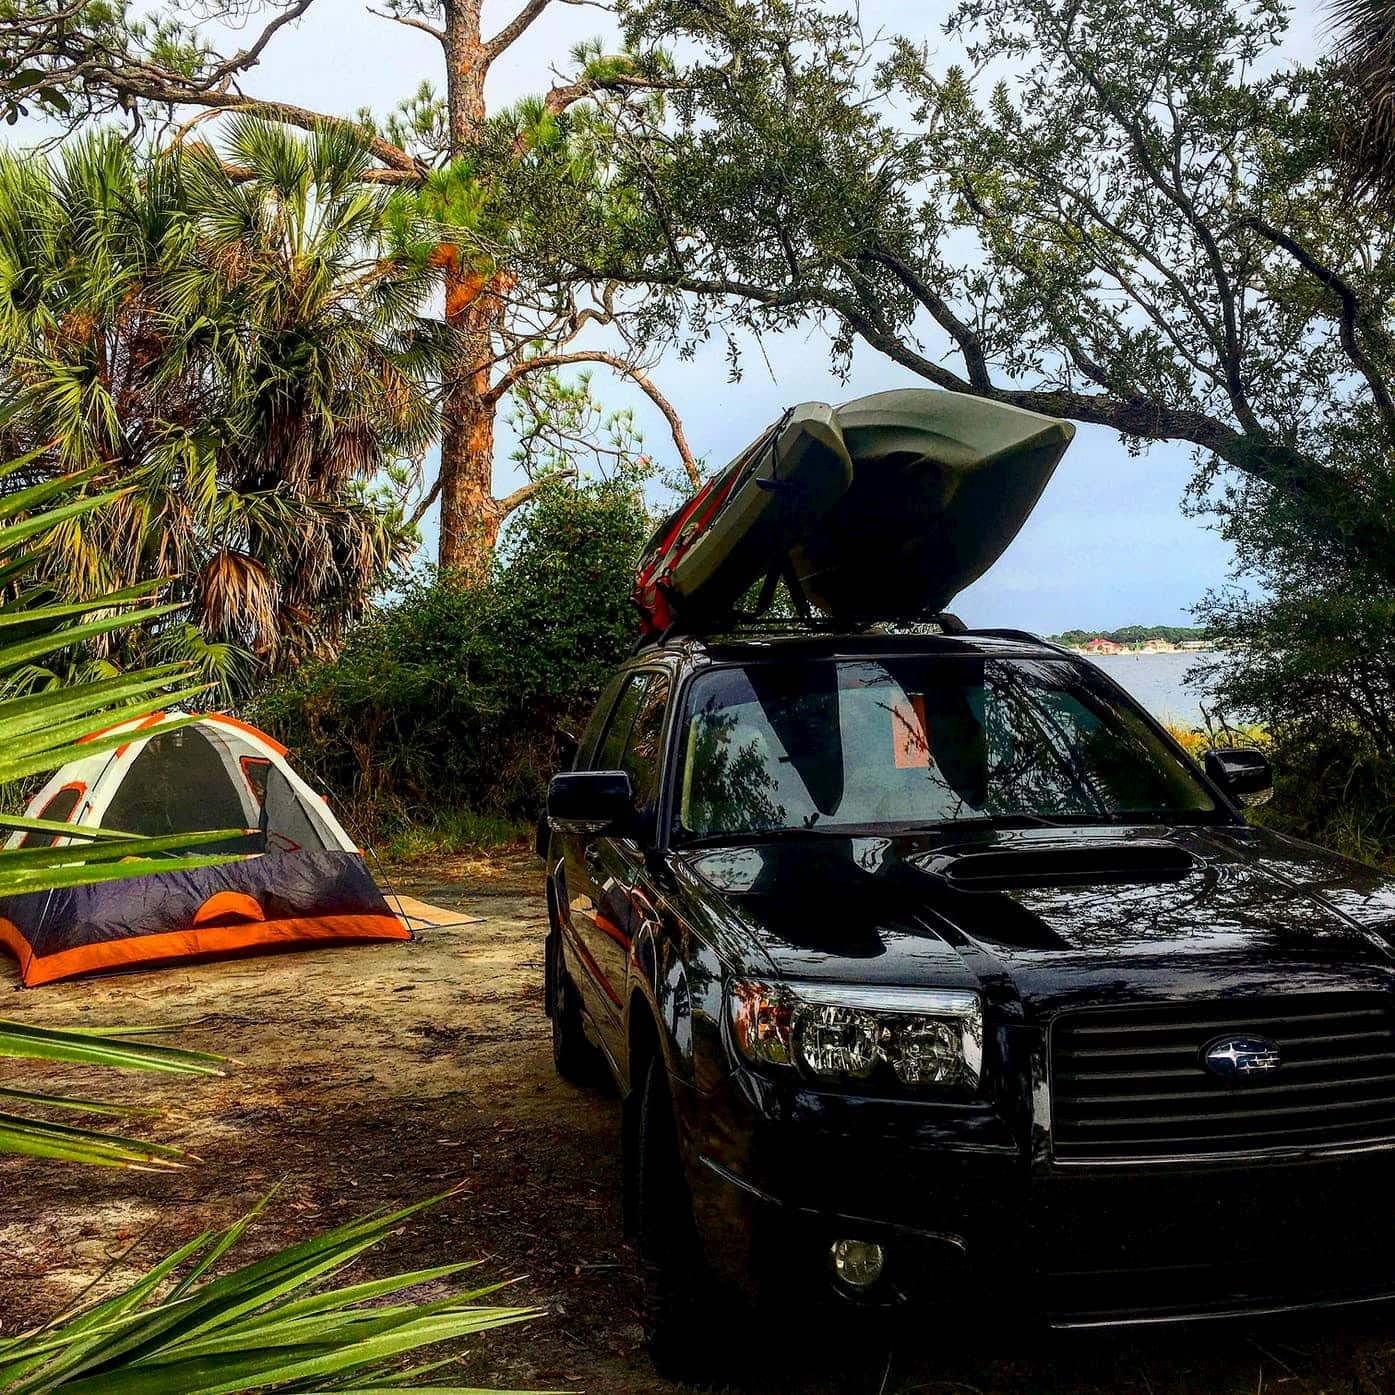 Black SUV with kayak on top parked next to tent at coastal campsite.